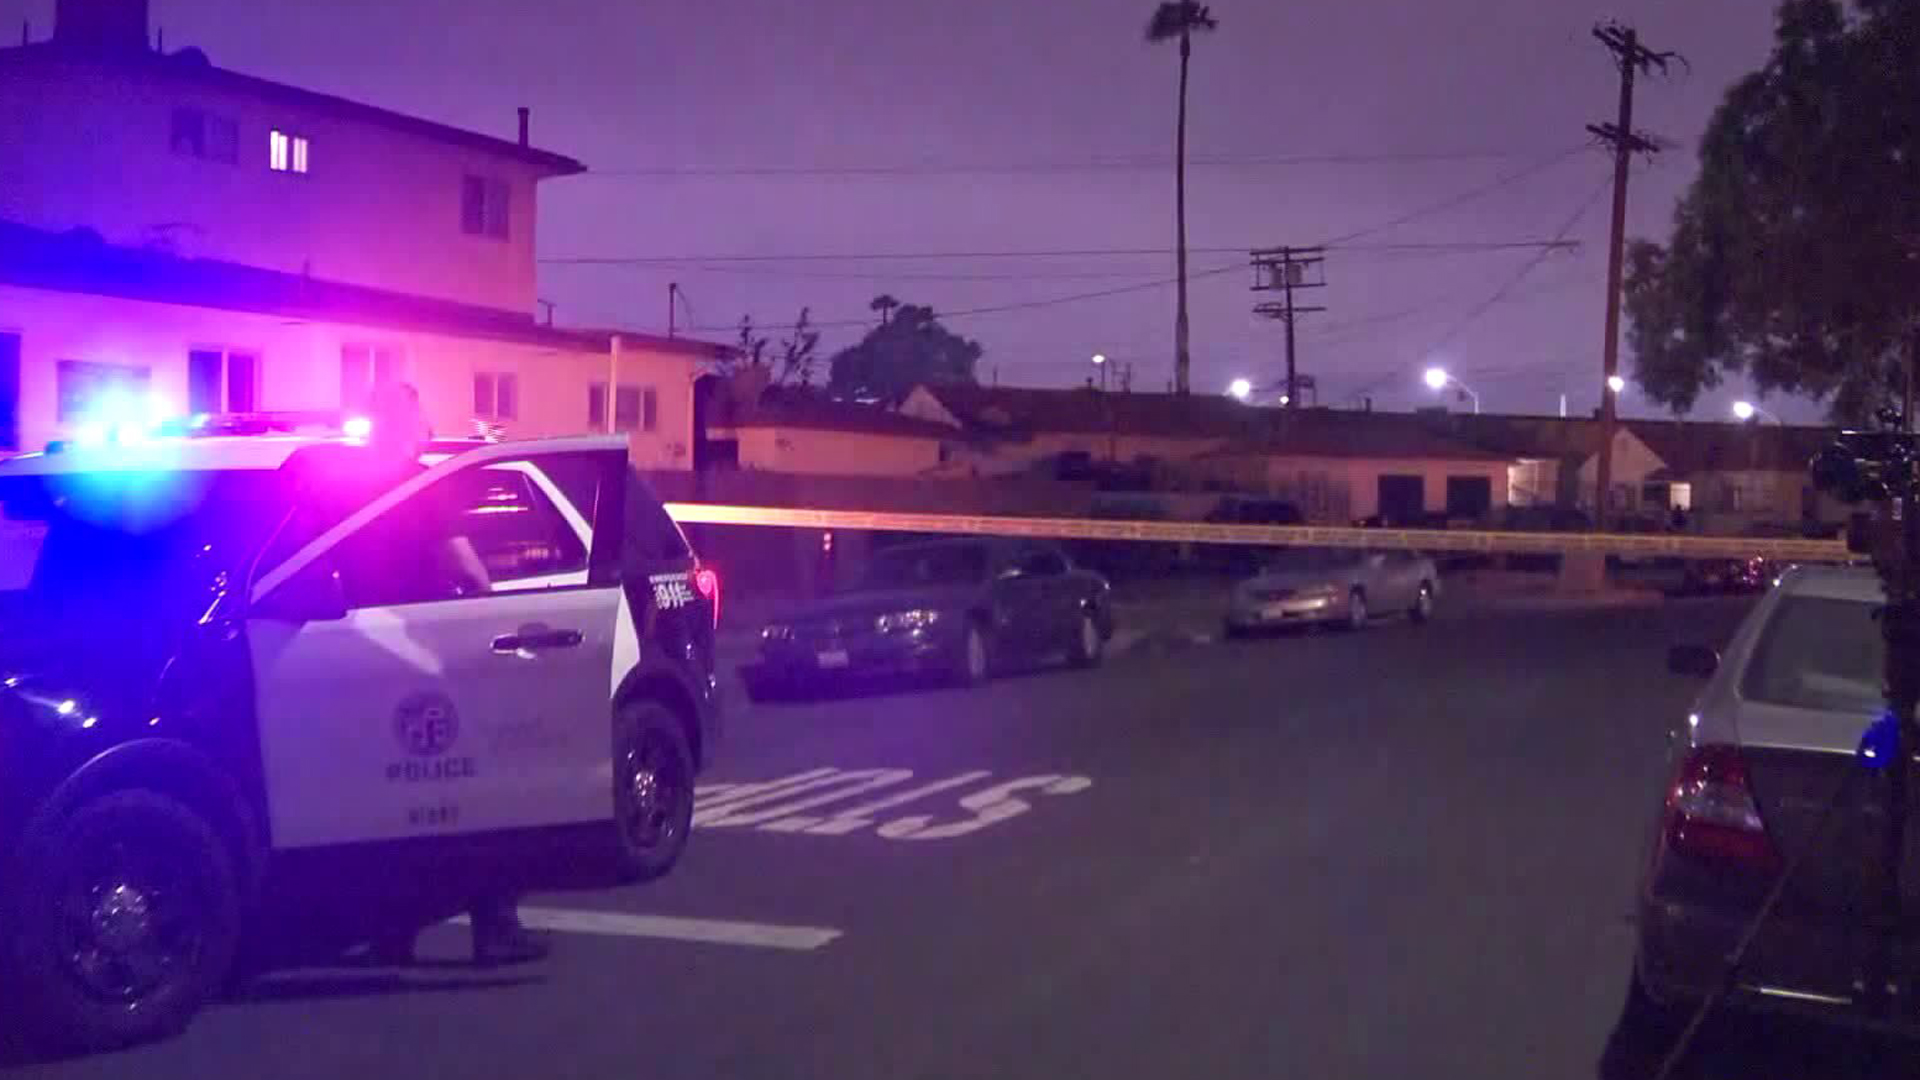 The scene in South L.A. where a suspected murder-suicide was reported May 13, 2019, is seen here. (Credit: KTLA)